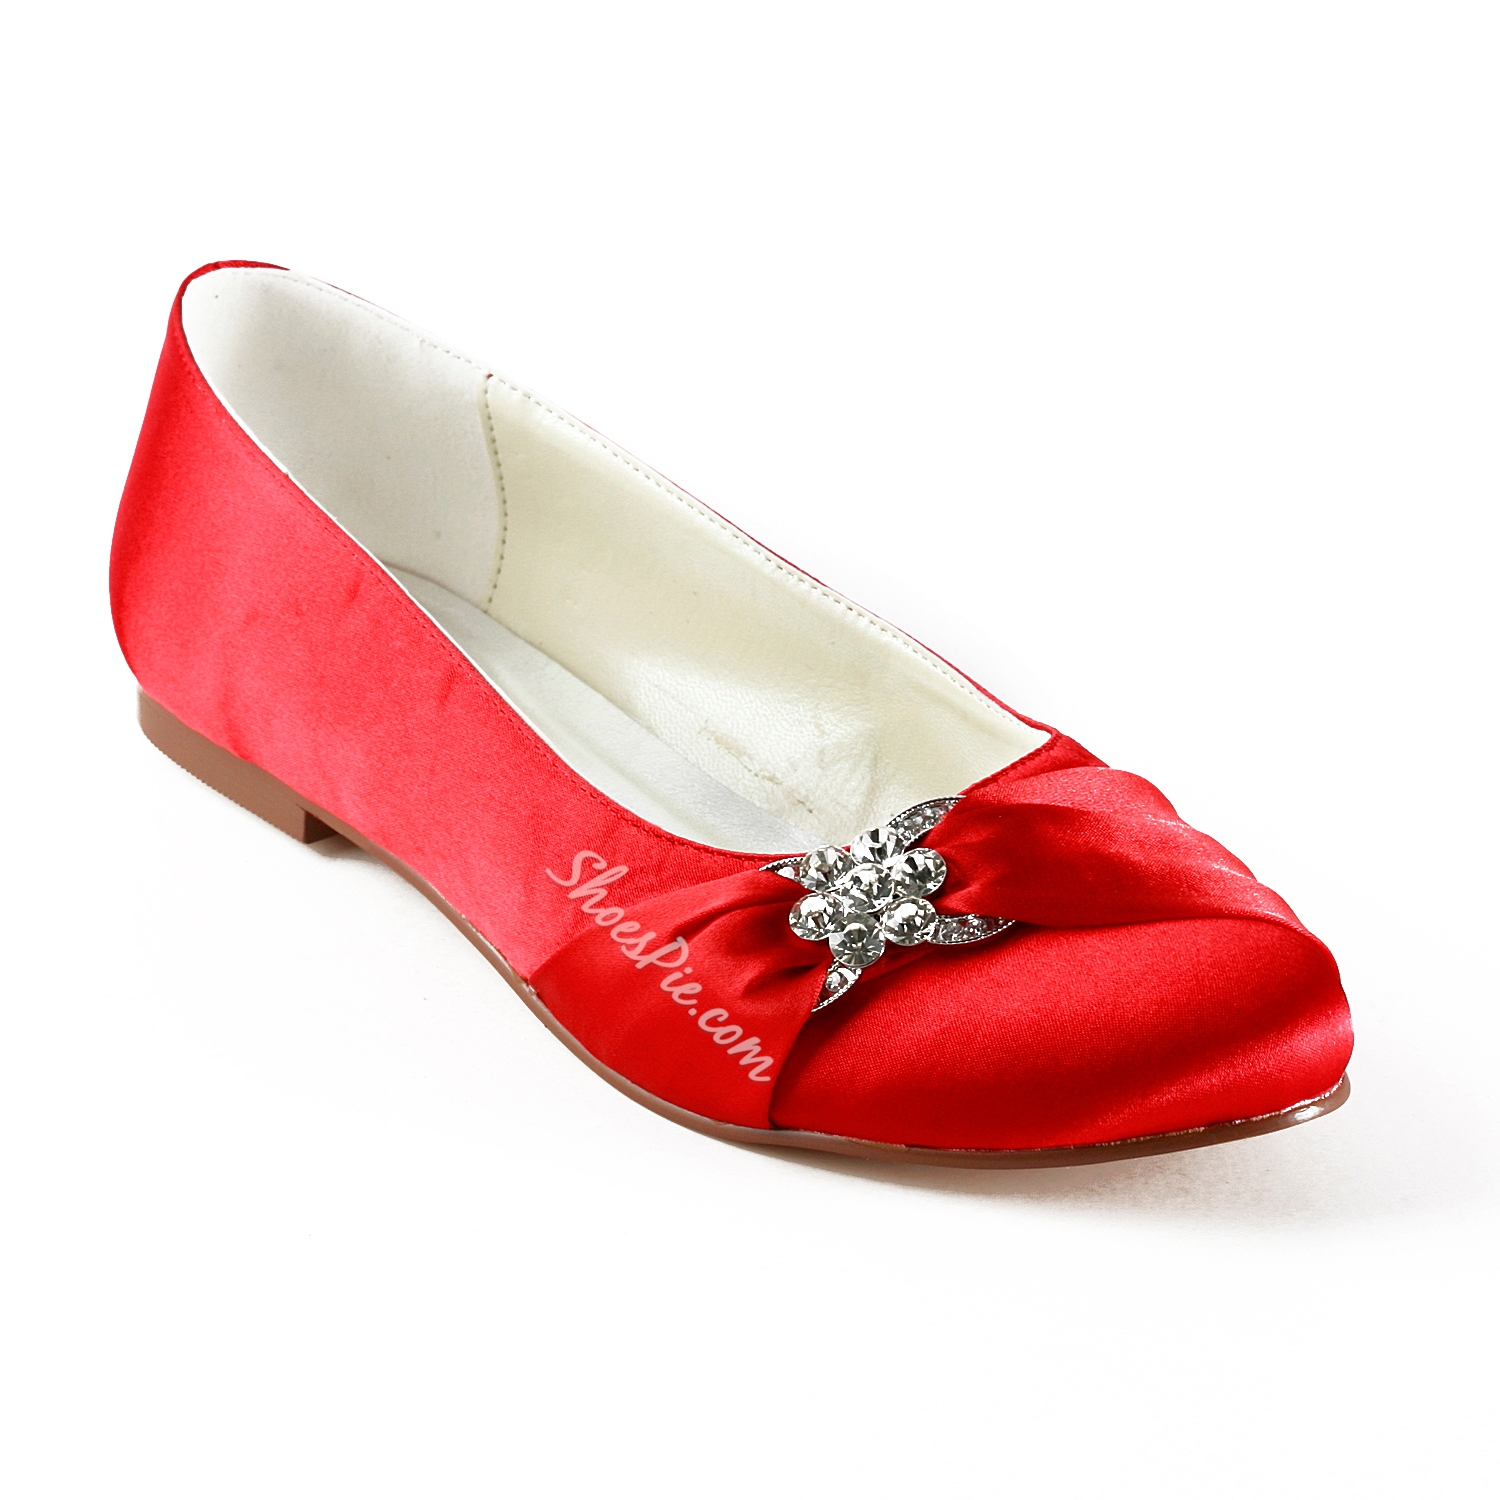 Fashion Red Satin Flat Heels Round Toe Wedding Bridal Shoes